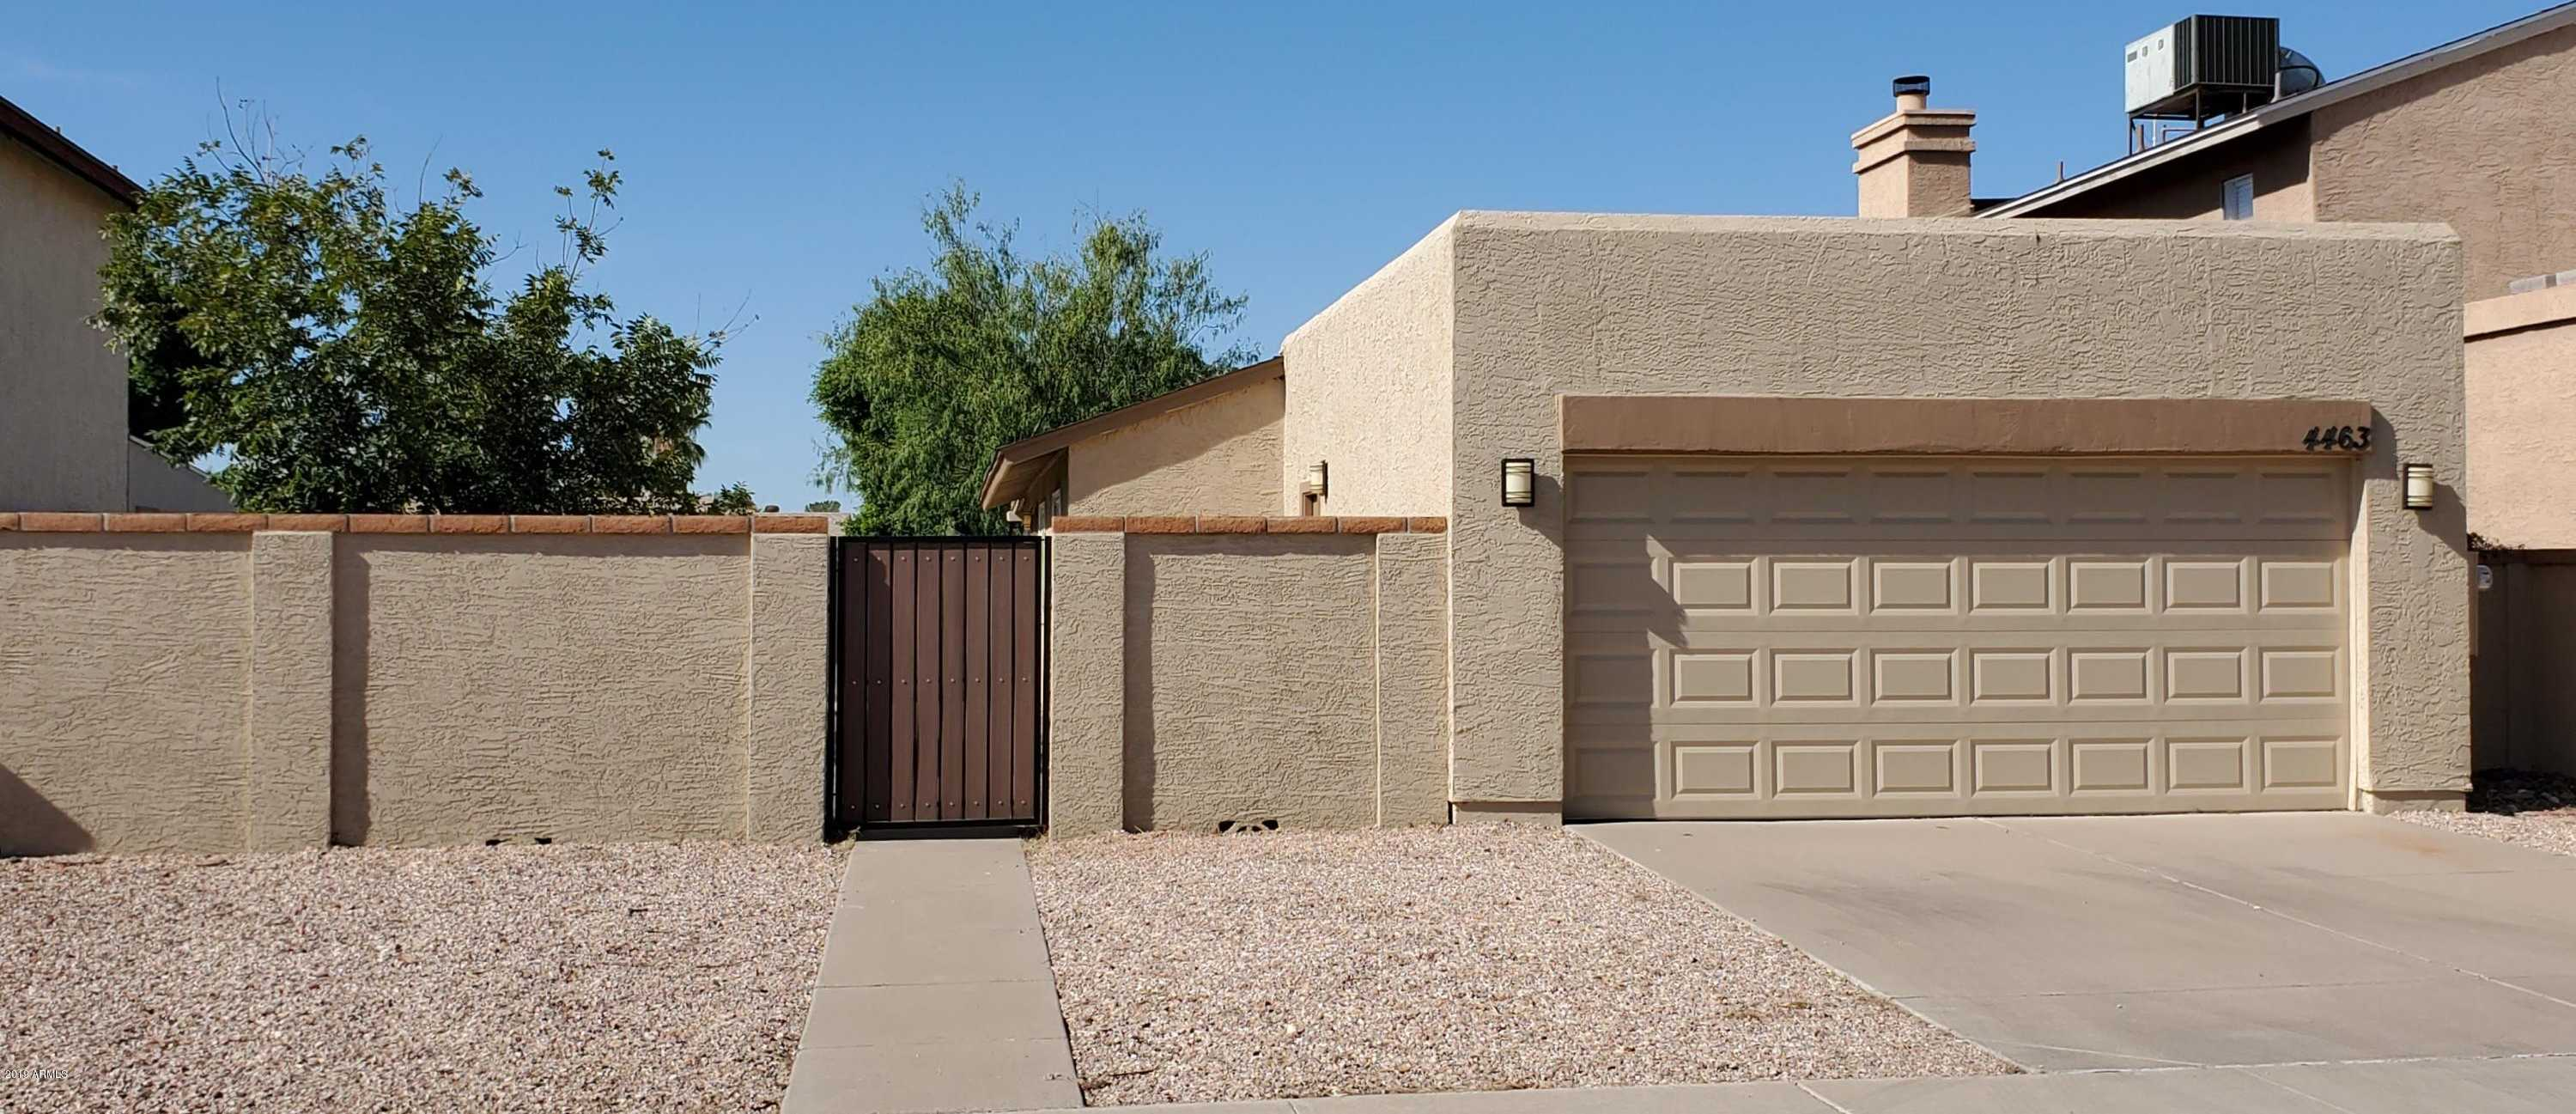 $200,000 - 3Br/2Ba - Home for Sale in Overland Hills Amd Lot 200-319 Drainageway, Glendale